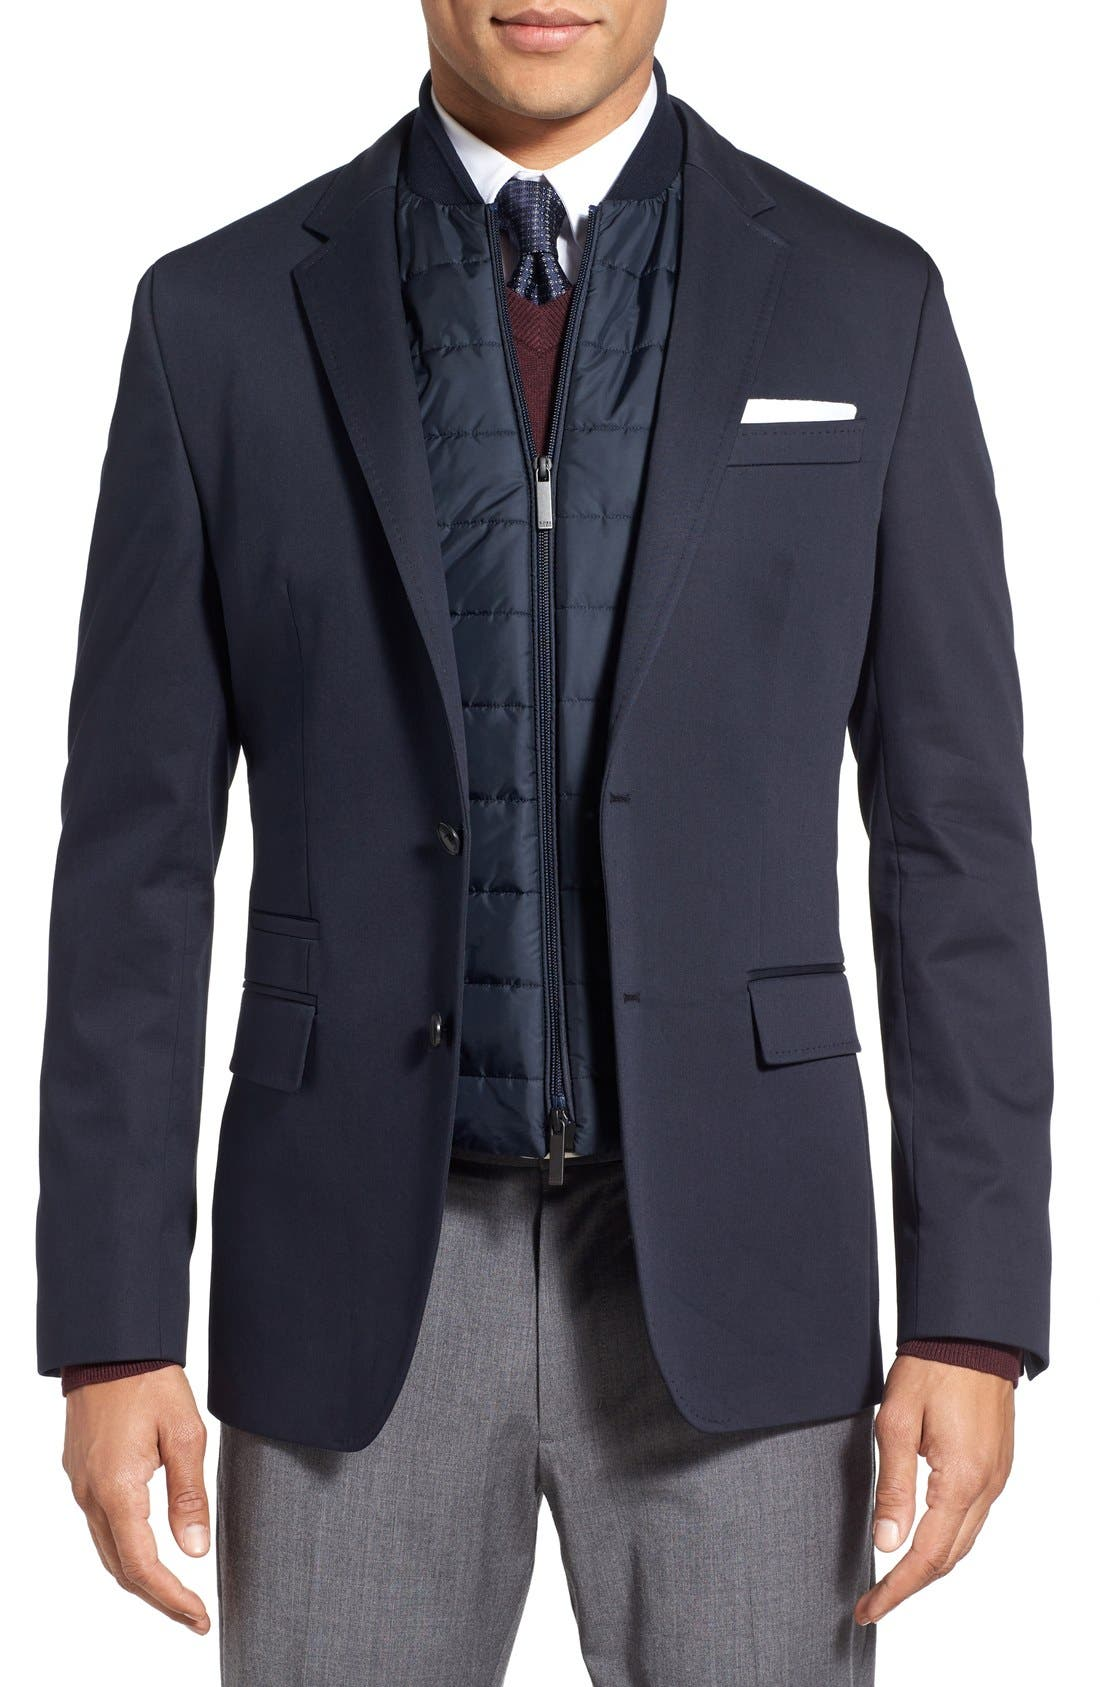 Alternate Image 1 Selected - BOSS 'Hadwart' Trim Fit Cotton Blend Blazer